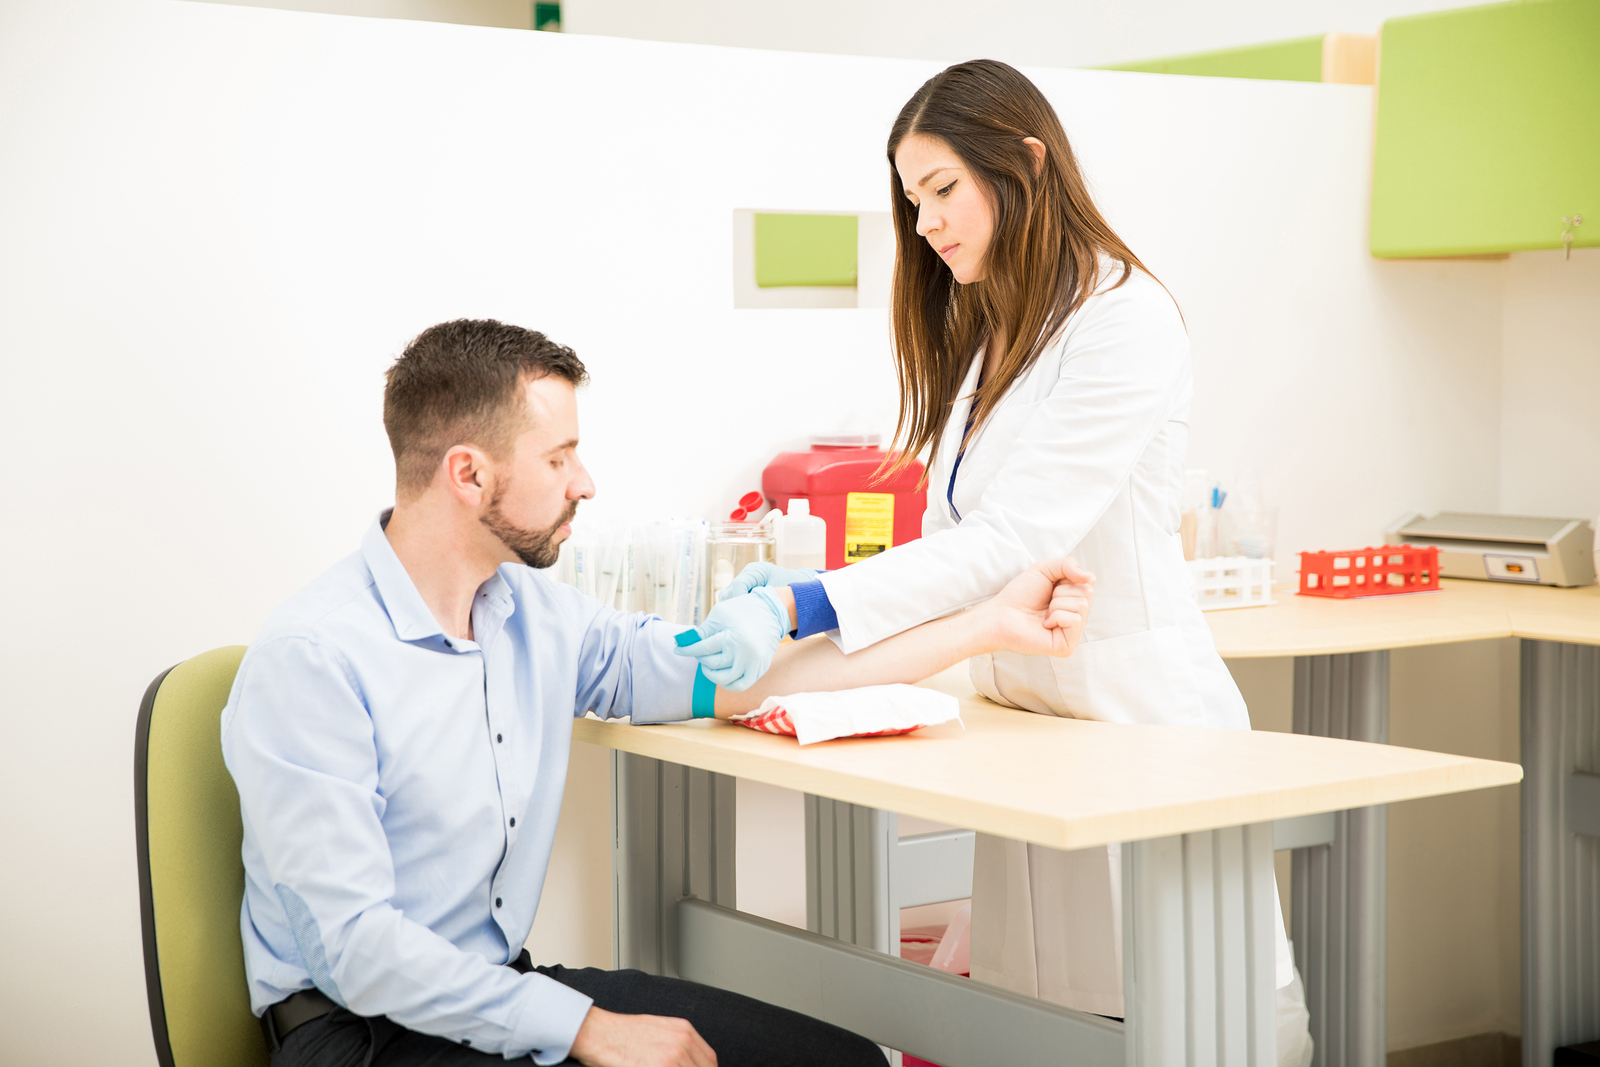 The nerves in the arm are extremely delicate and must be treated with care. Improper handling of a needle or an improperly sized needle used on a patient can result in CRPS, leaving the patient in agony for a lifetime. ©BigStockPhoto